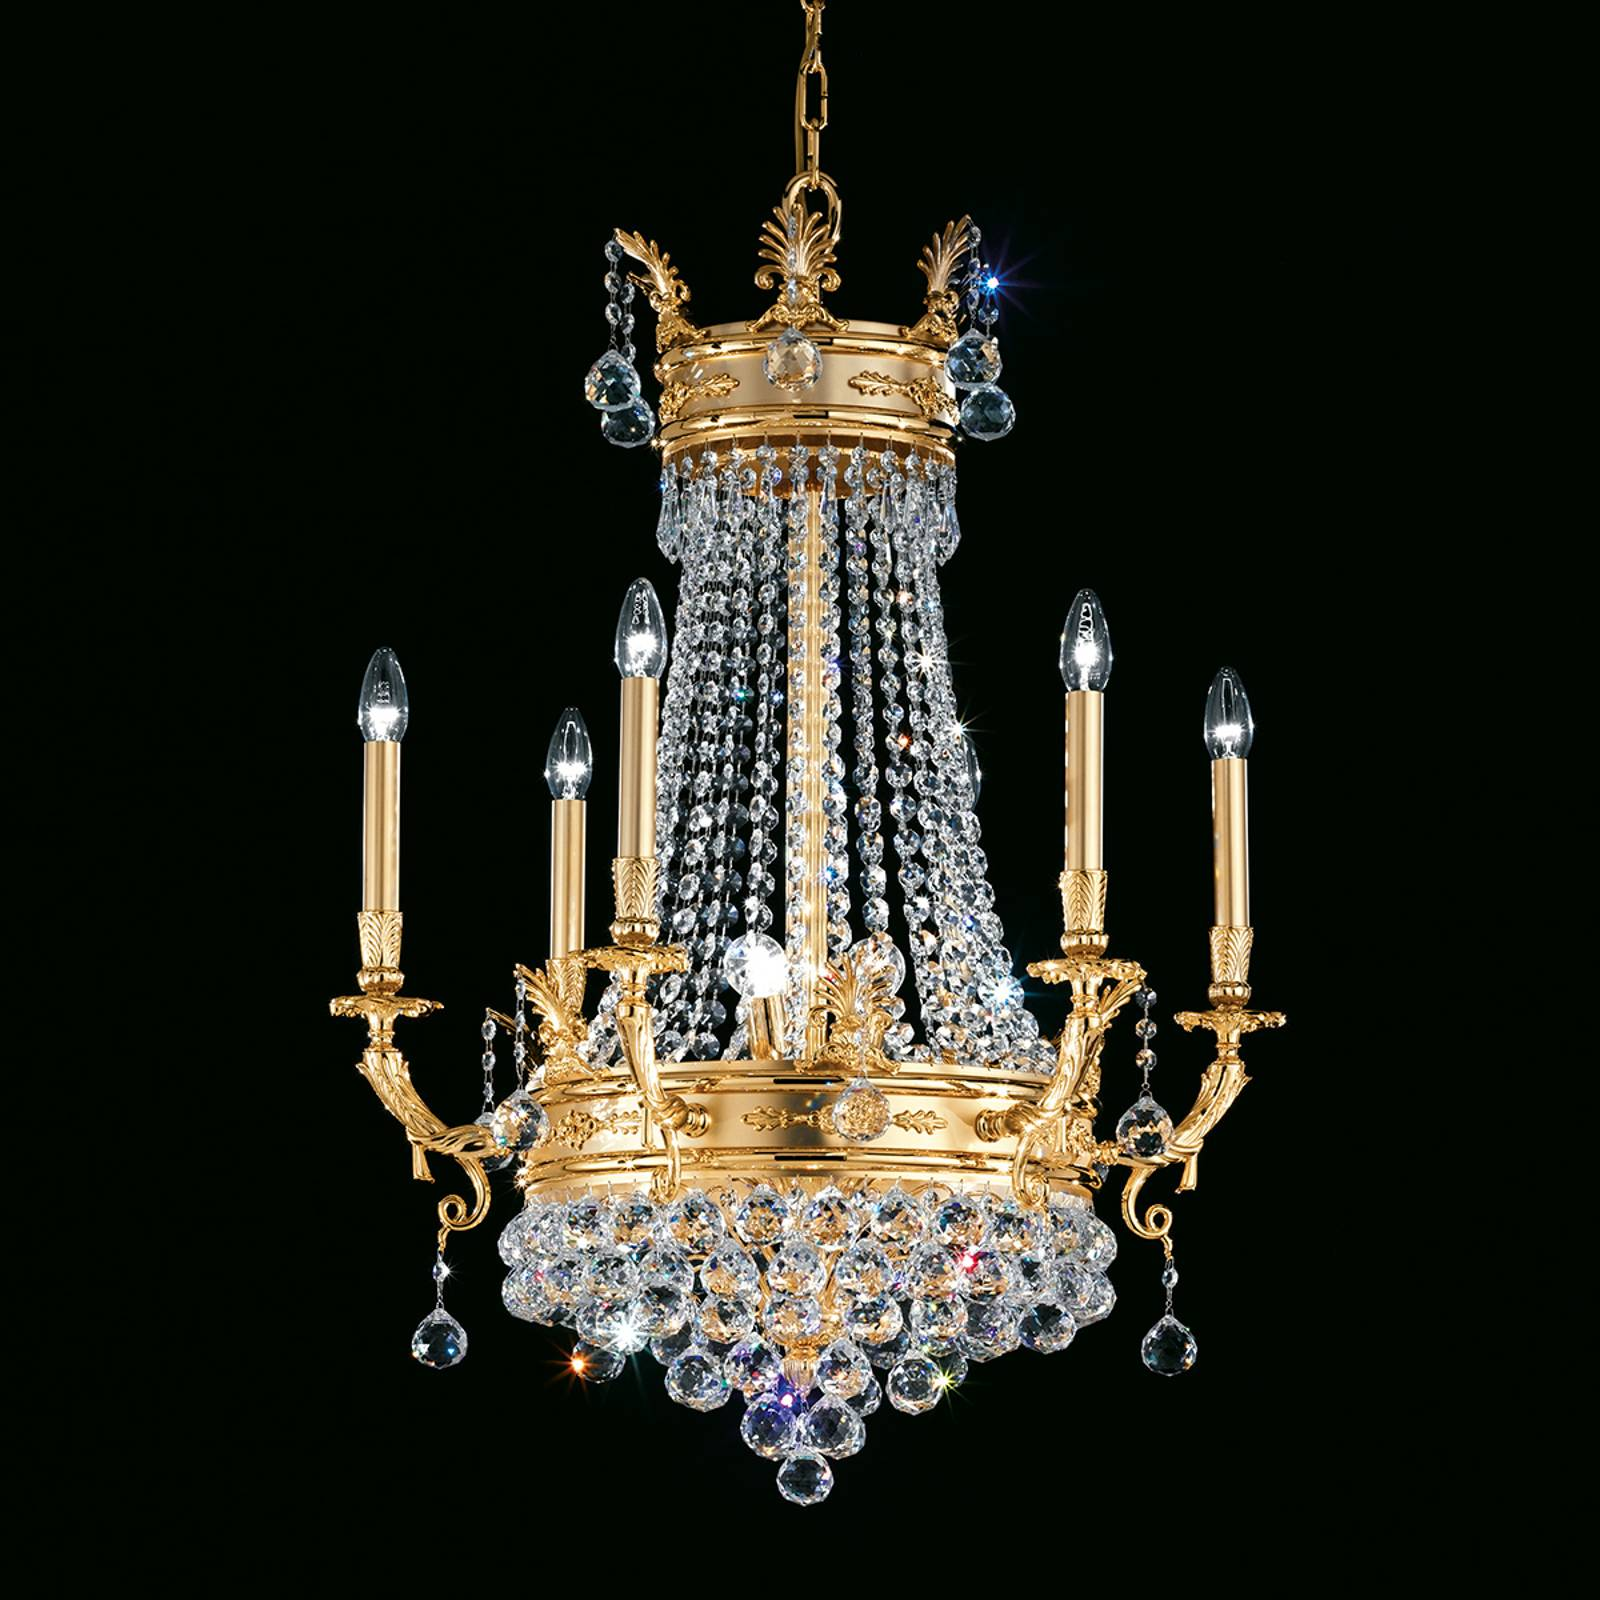 Umbria beguiling chandelier from Masiero